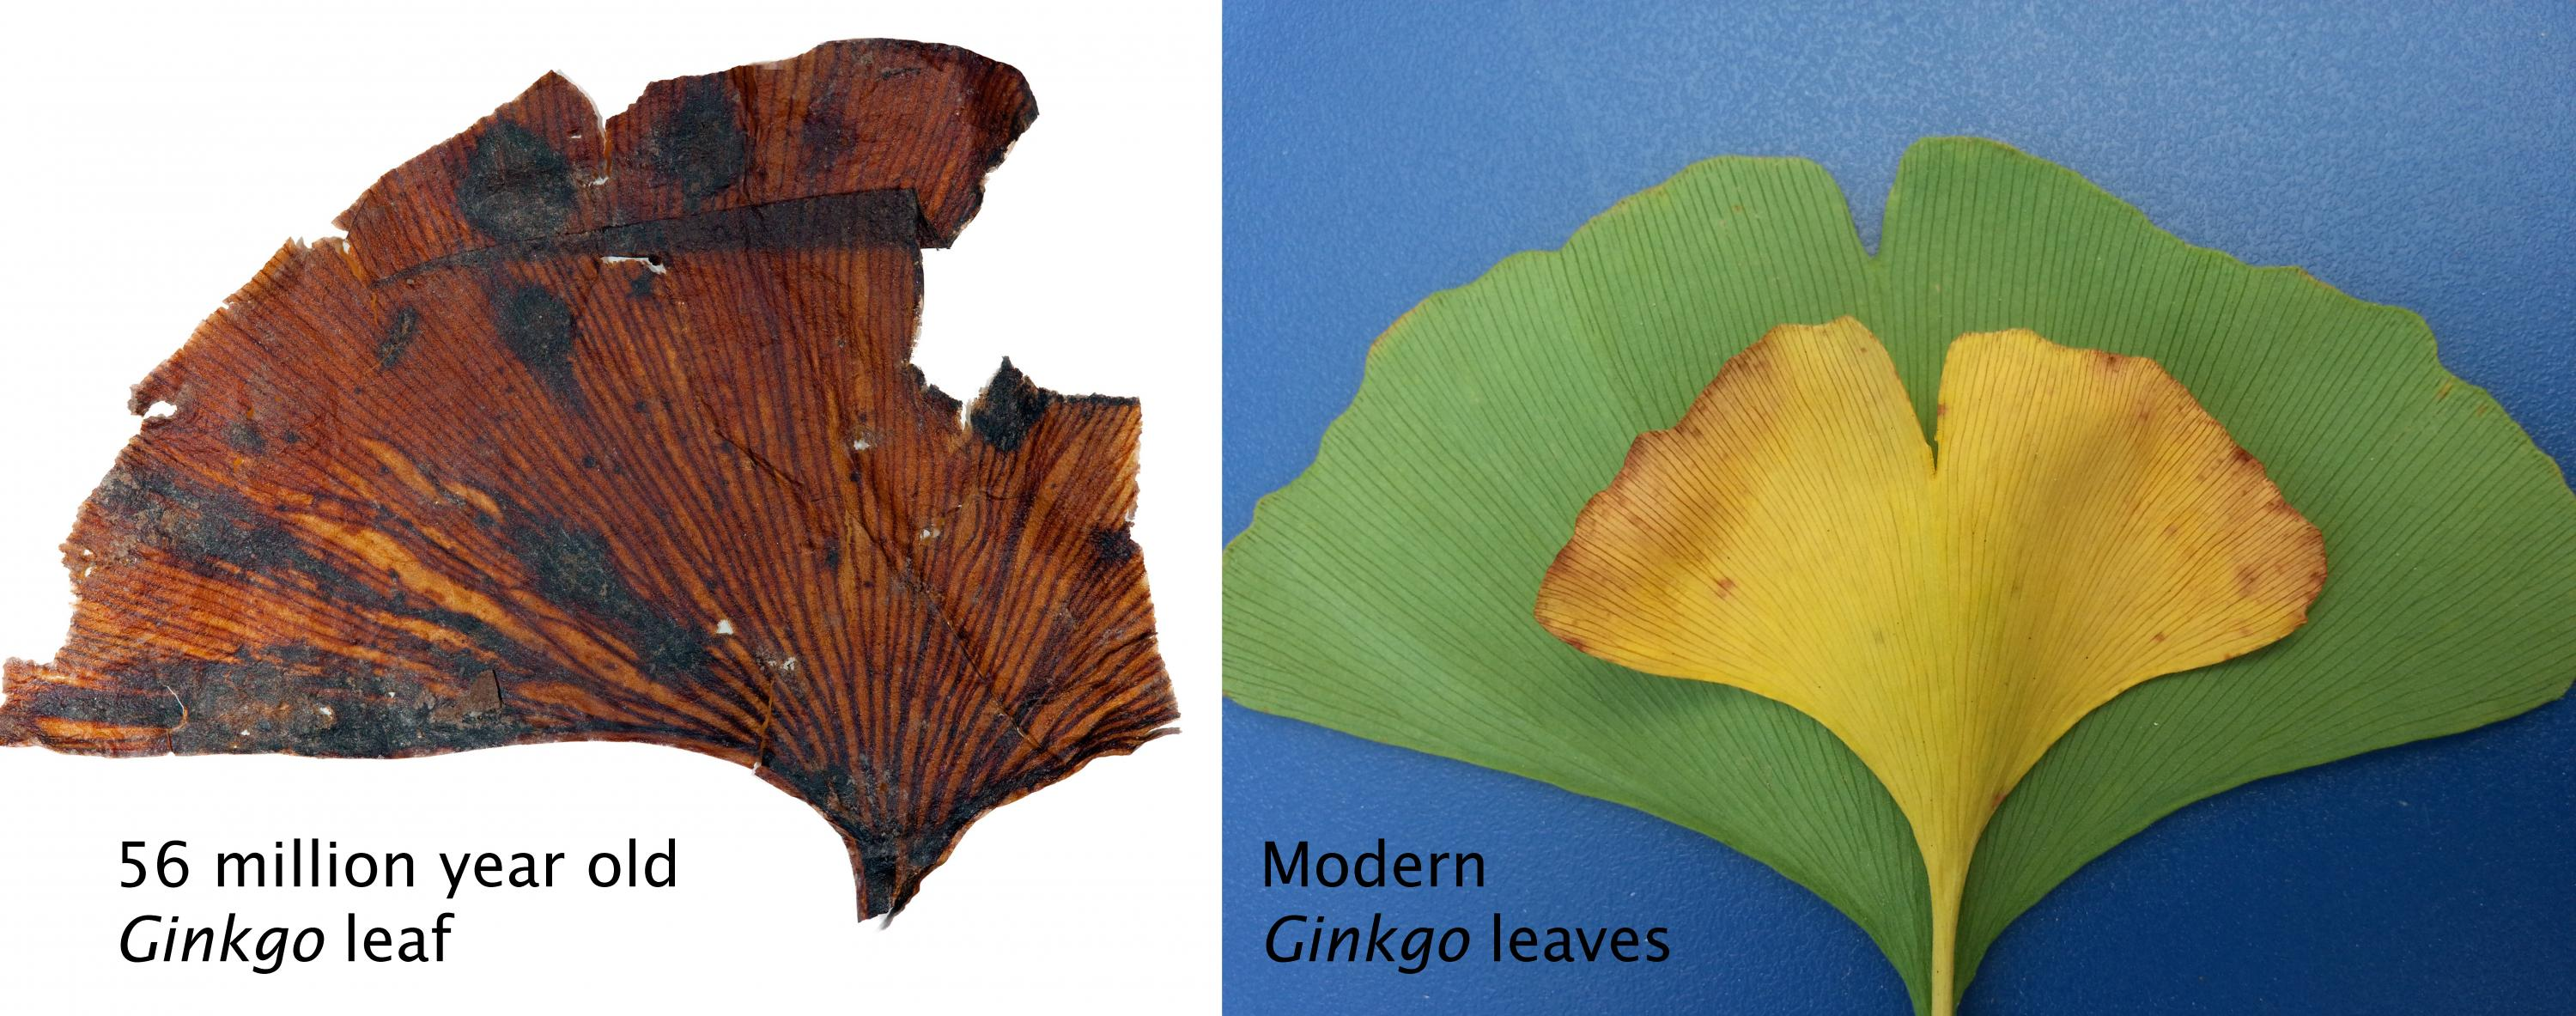 Comparison of fossil and modern Ginkgo leaves.